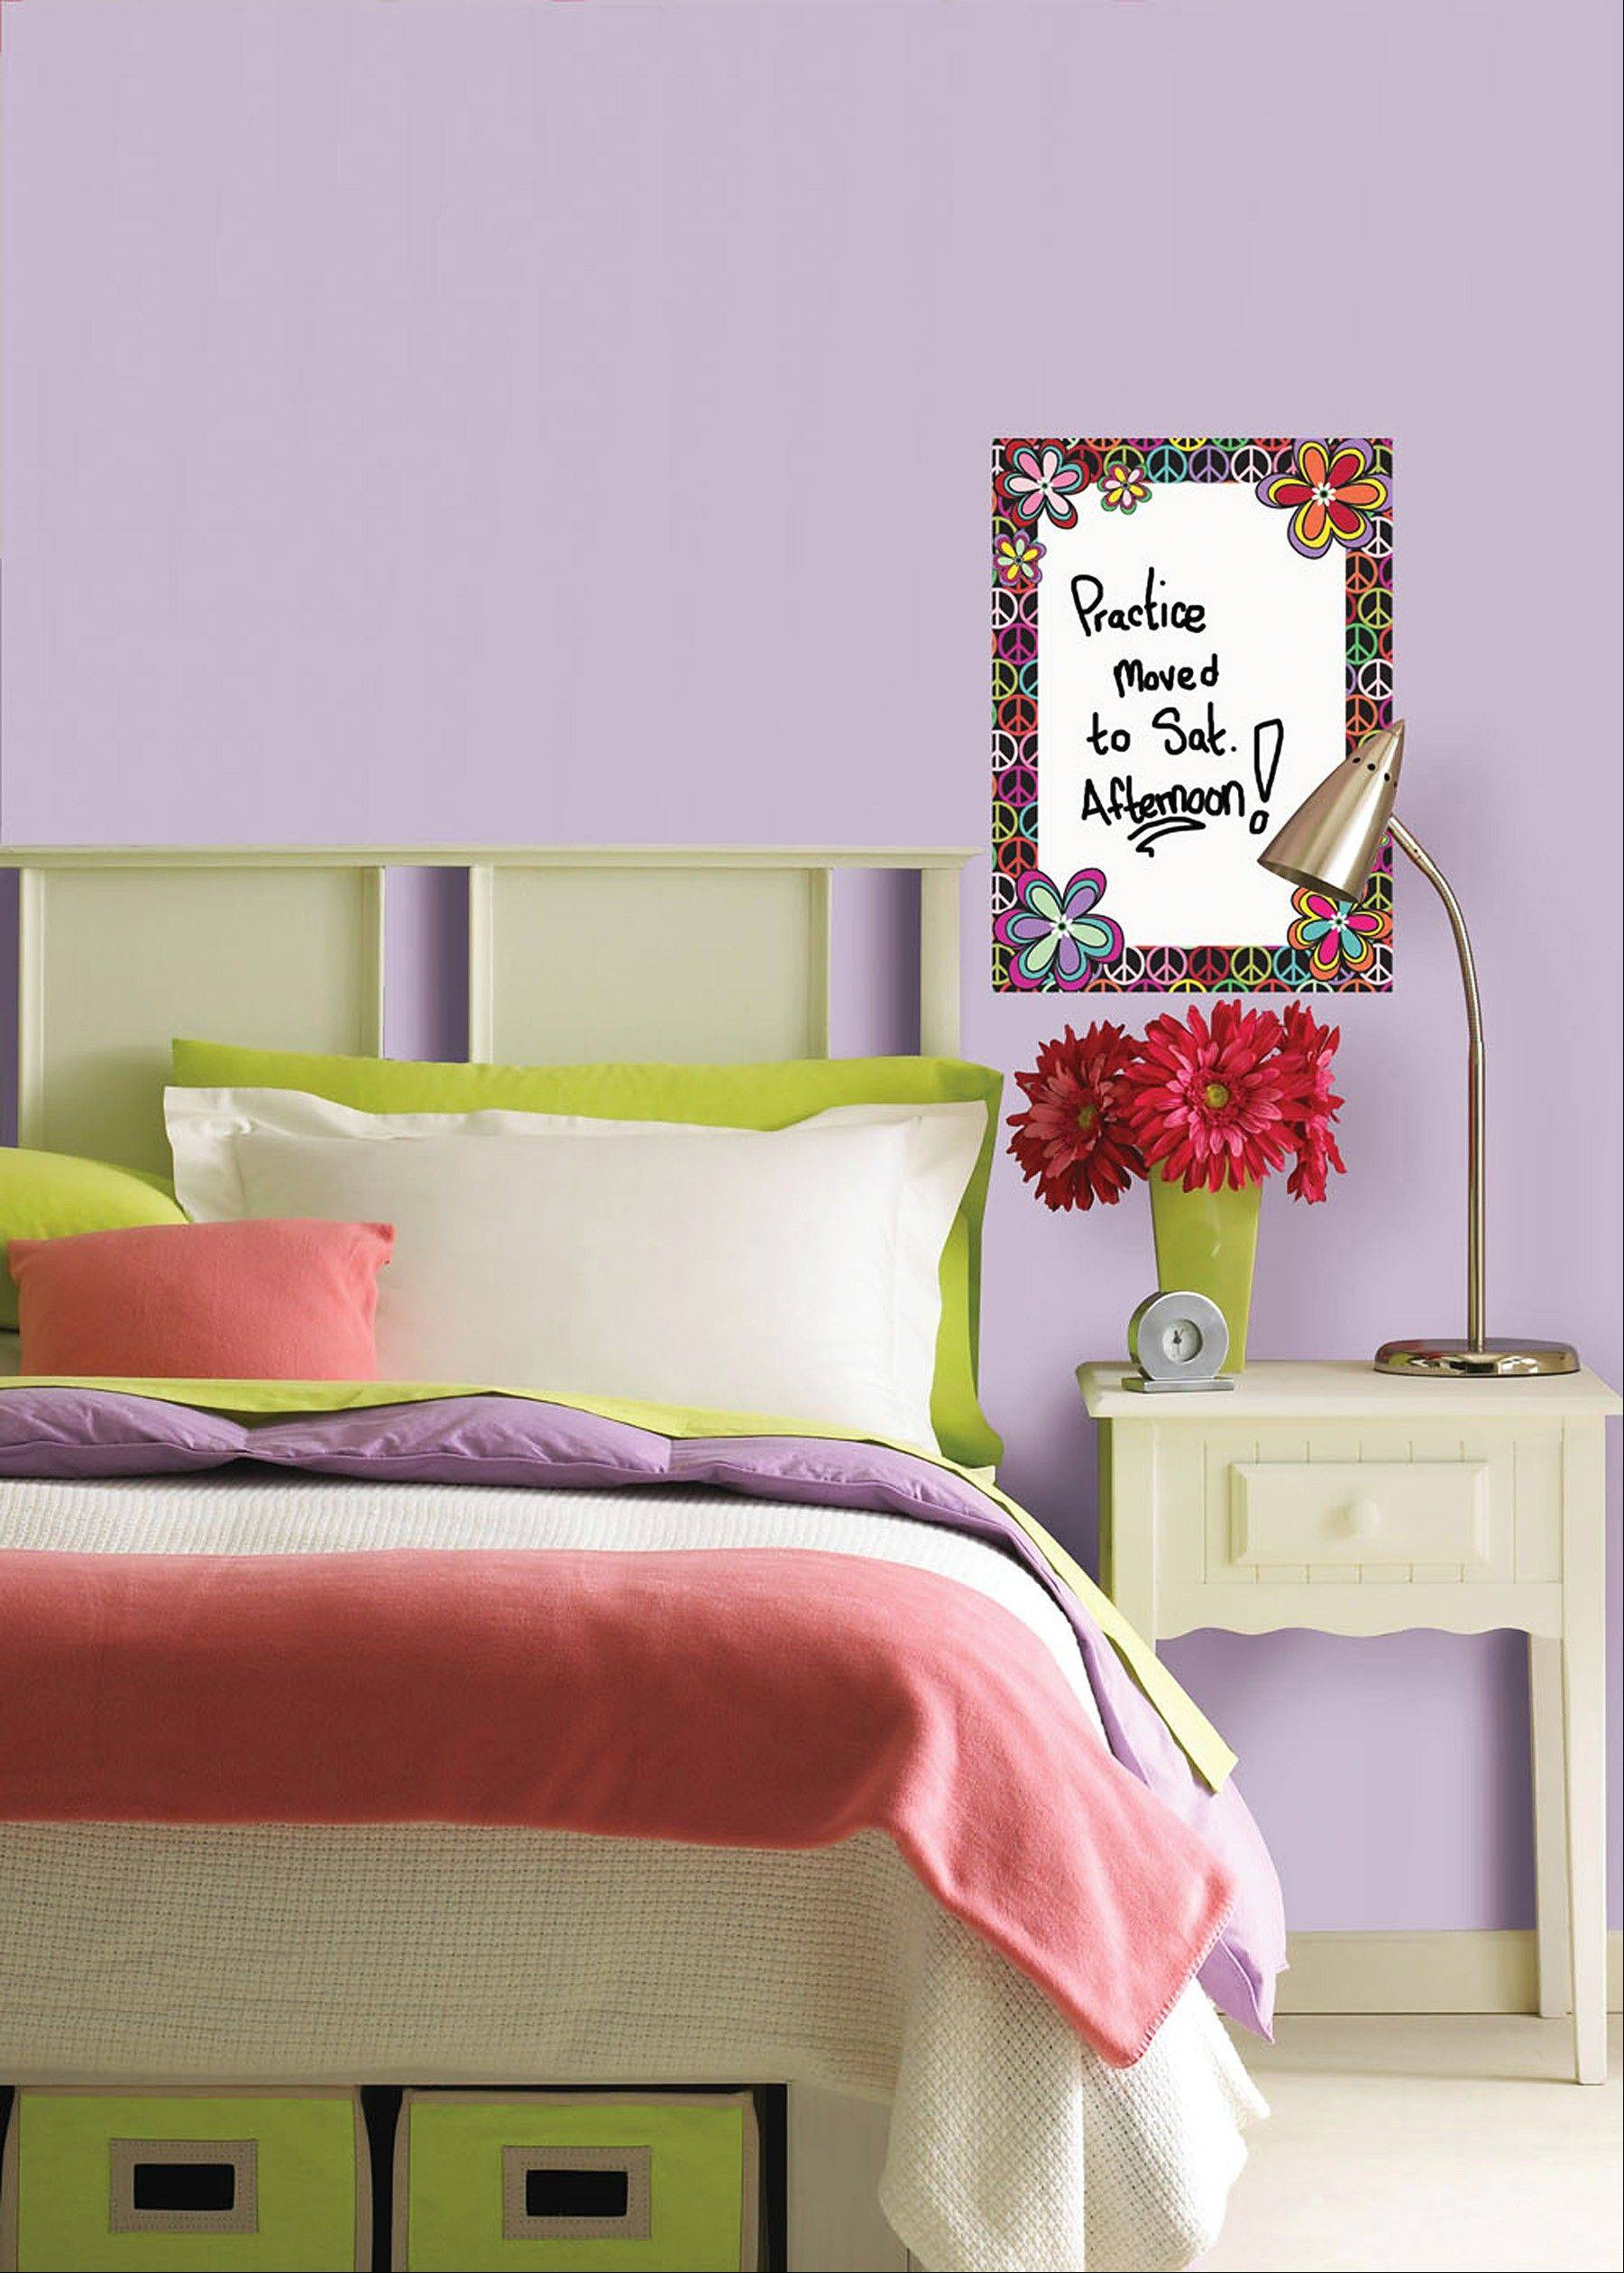 The WallPops Peace Dry-Erase Message Board decal can help a student keep track of appointments or a bedtime checklist of responsibilities.